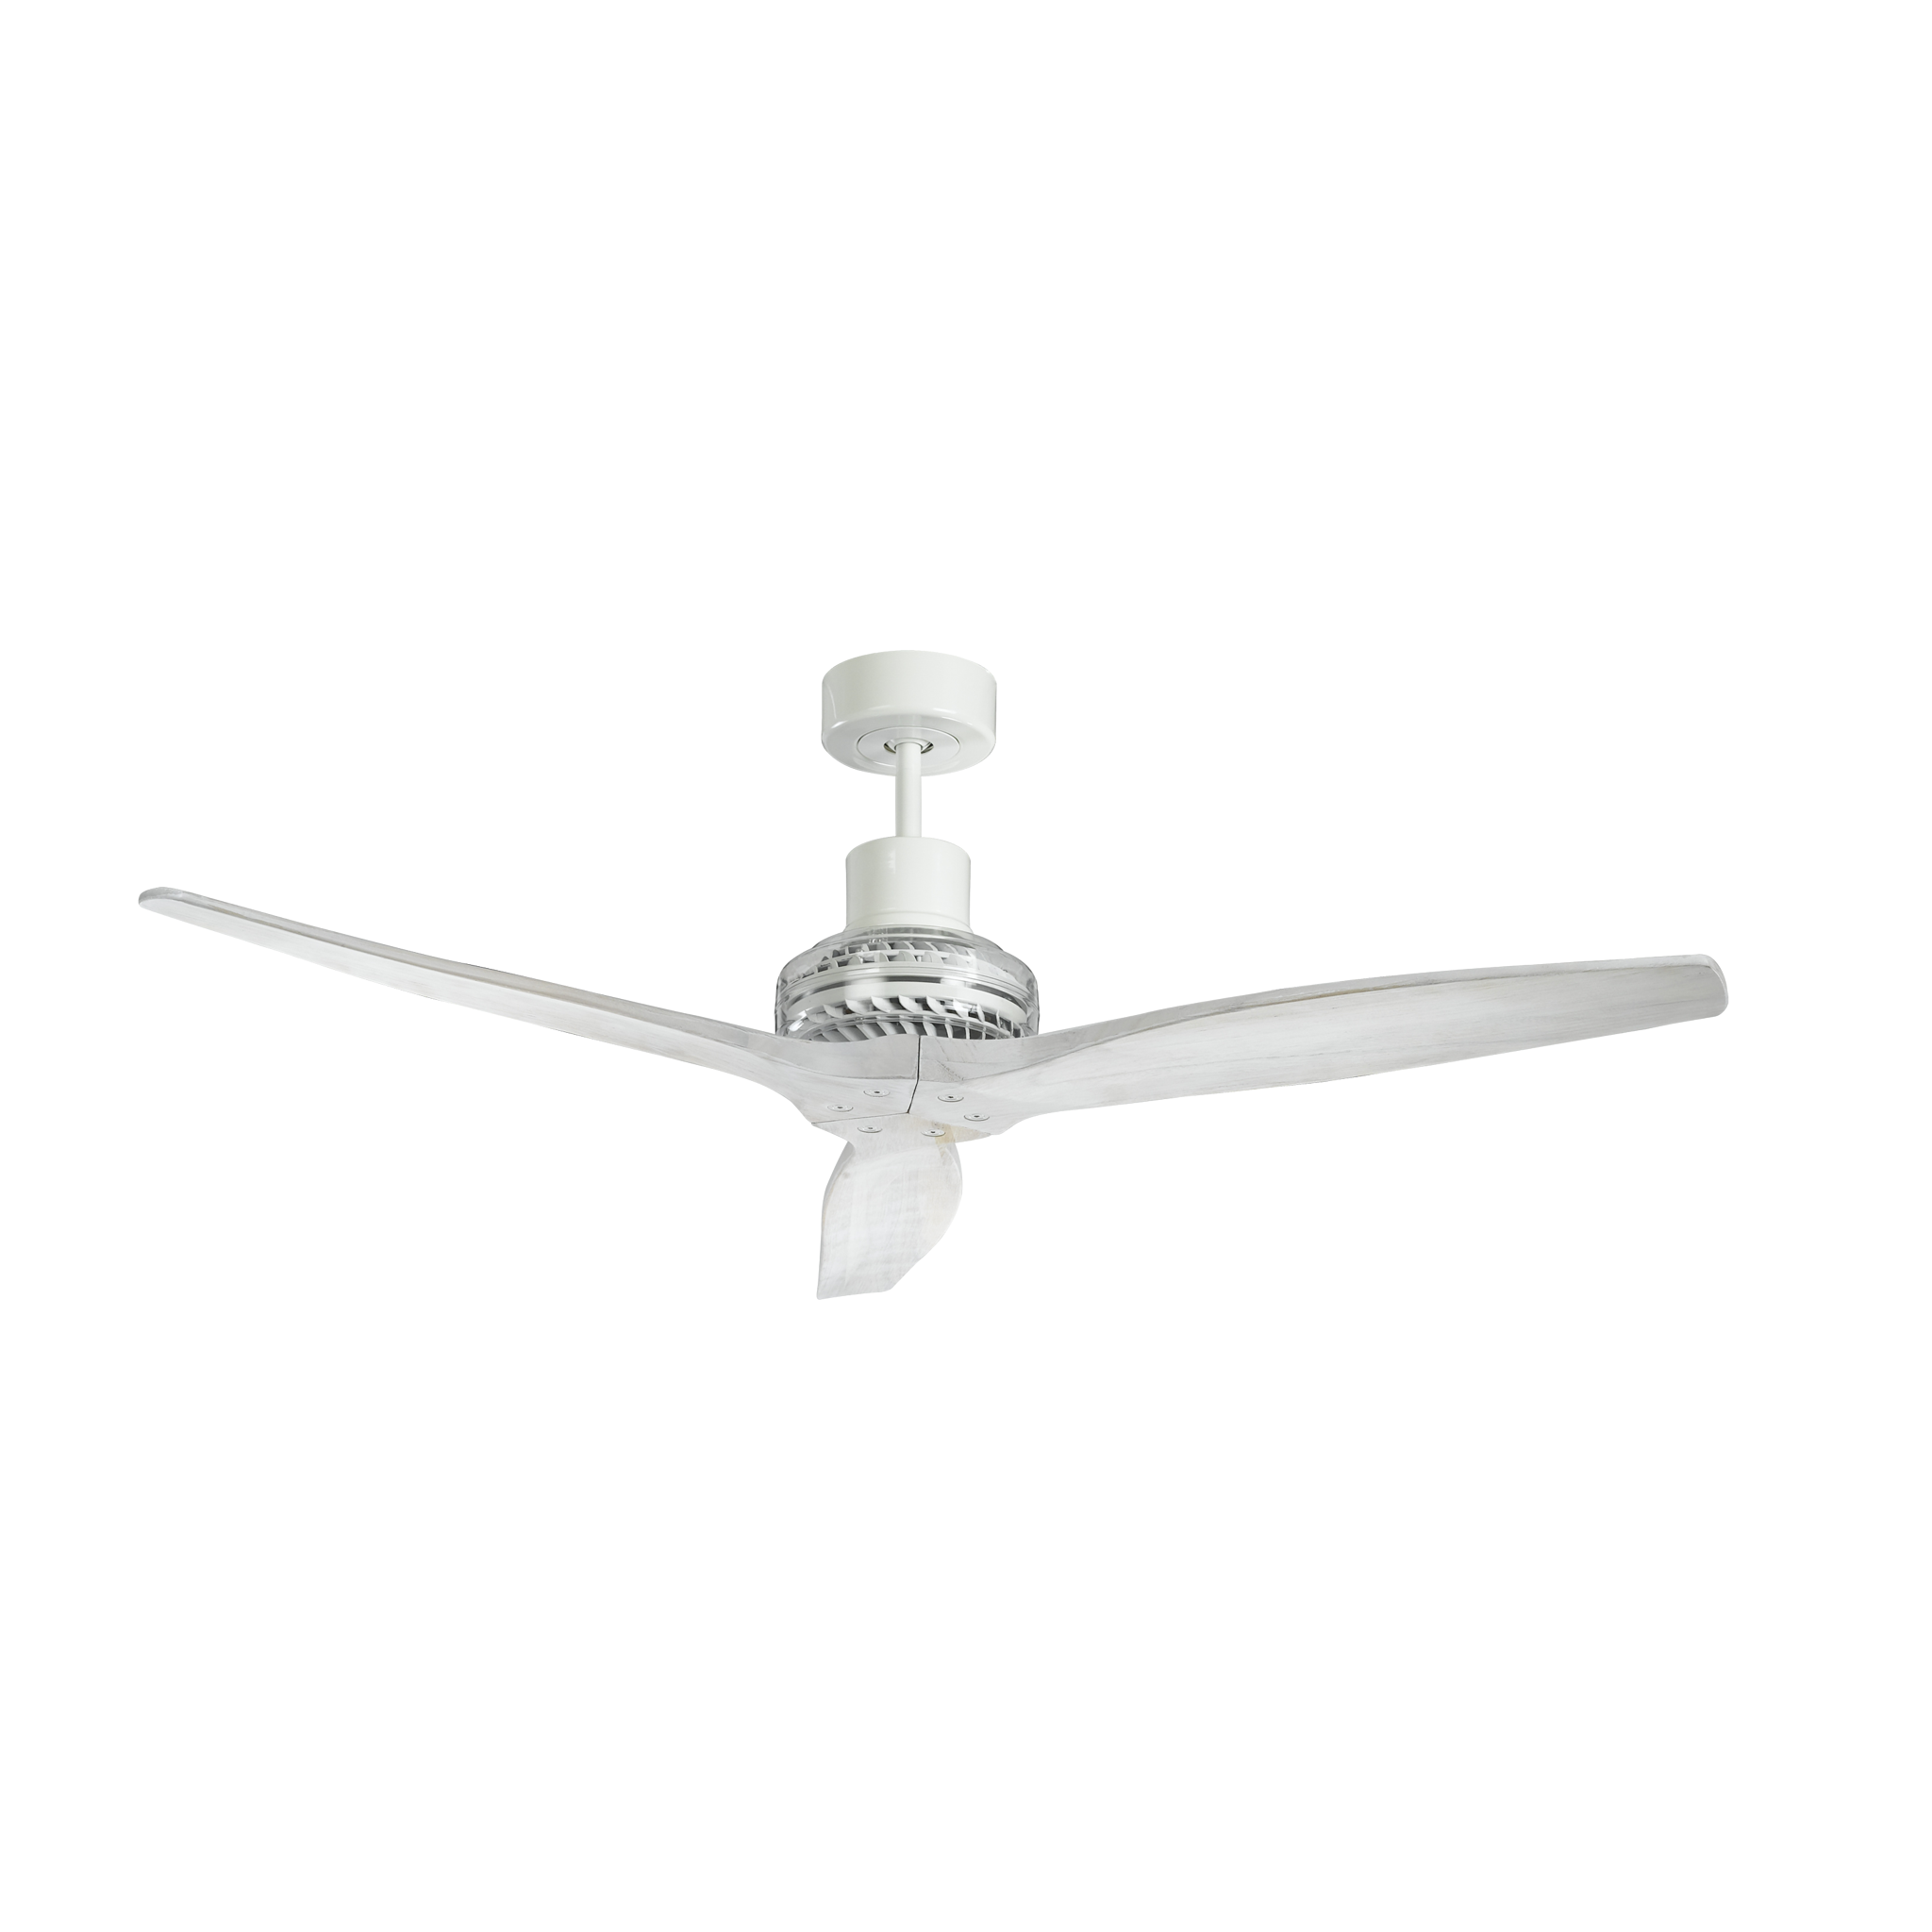 Design your ceiling fan star propeller star fans ceiling fans outdoor fan modern fan beautiful aloadofball